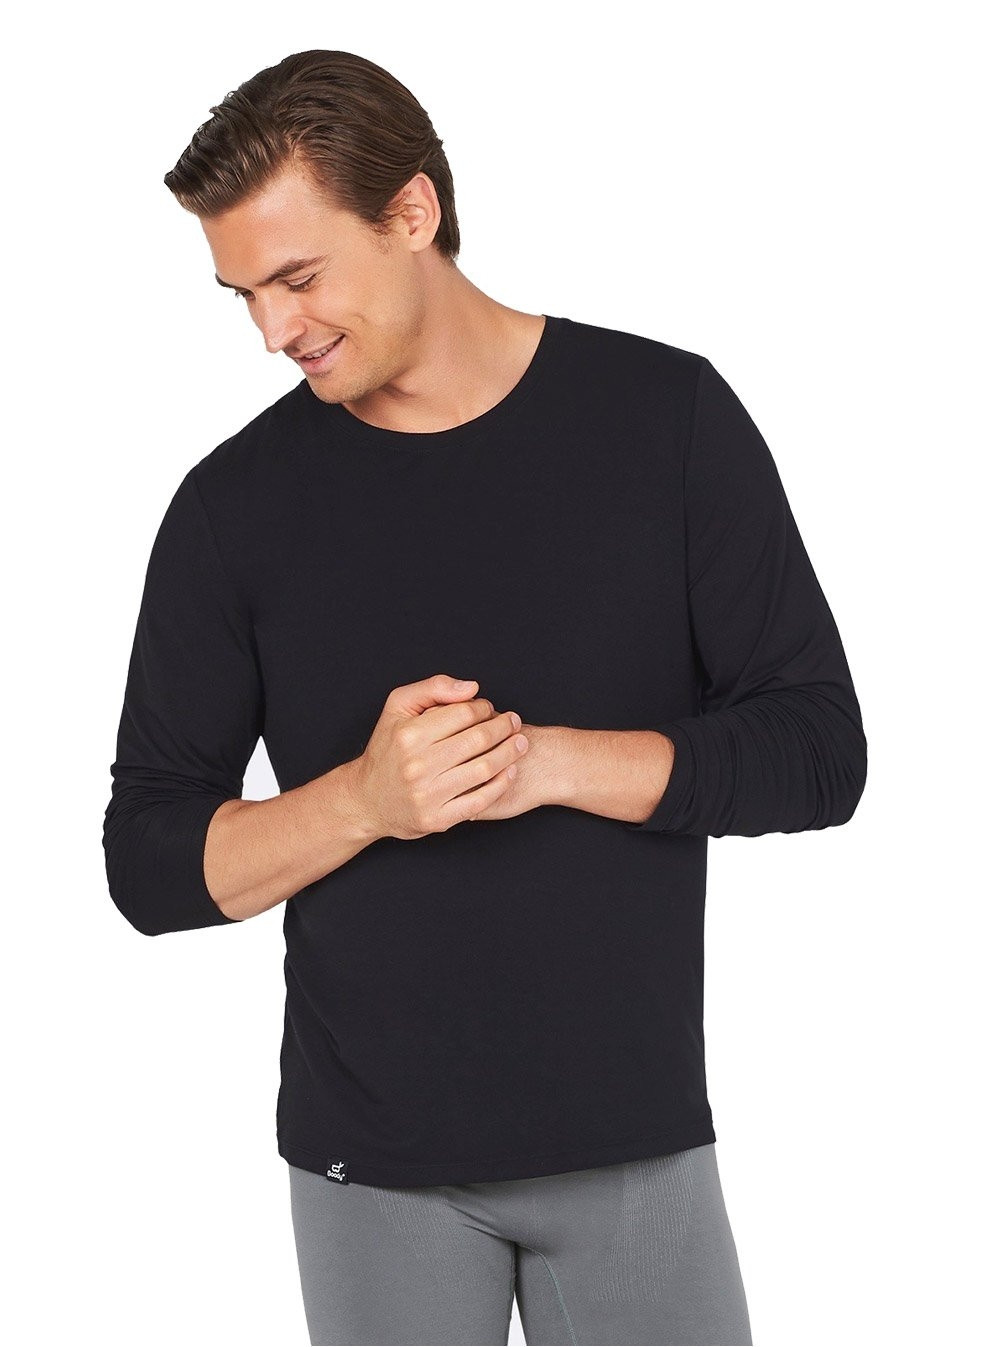 Boody Organic Bamboo Mens Long Sleeve T-Shirt